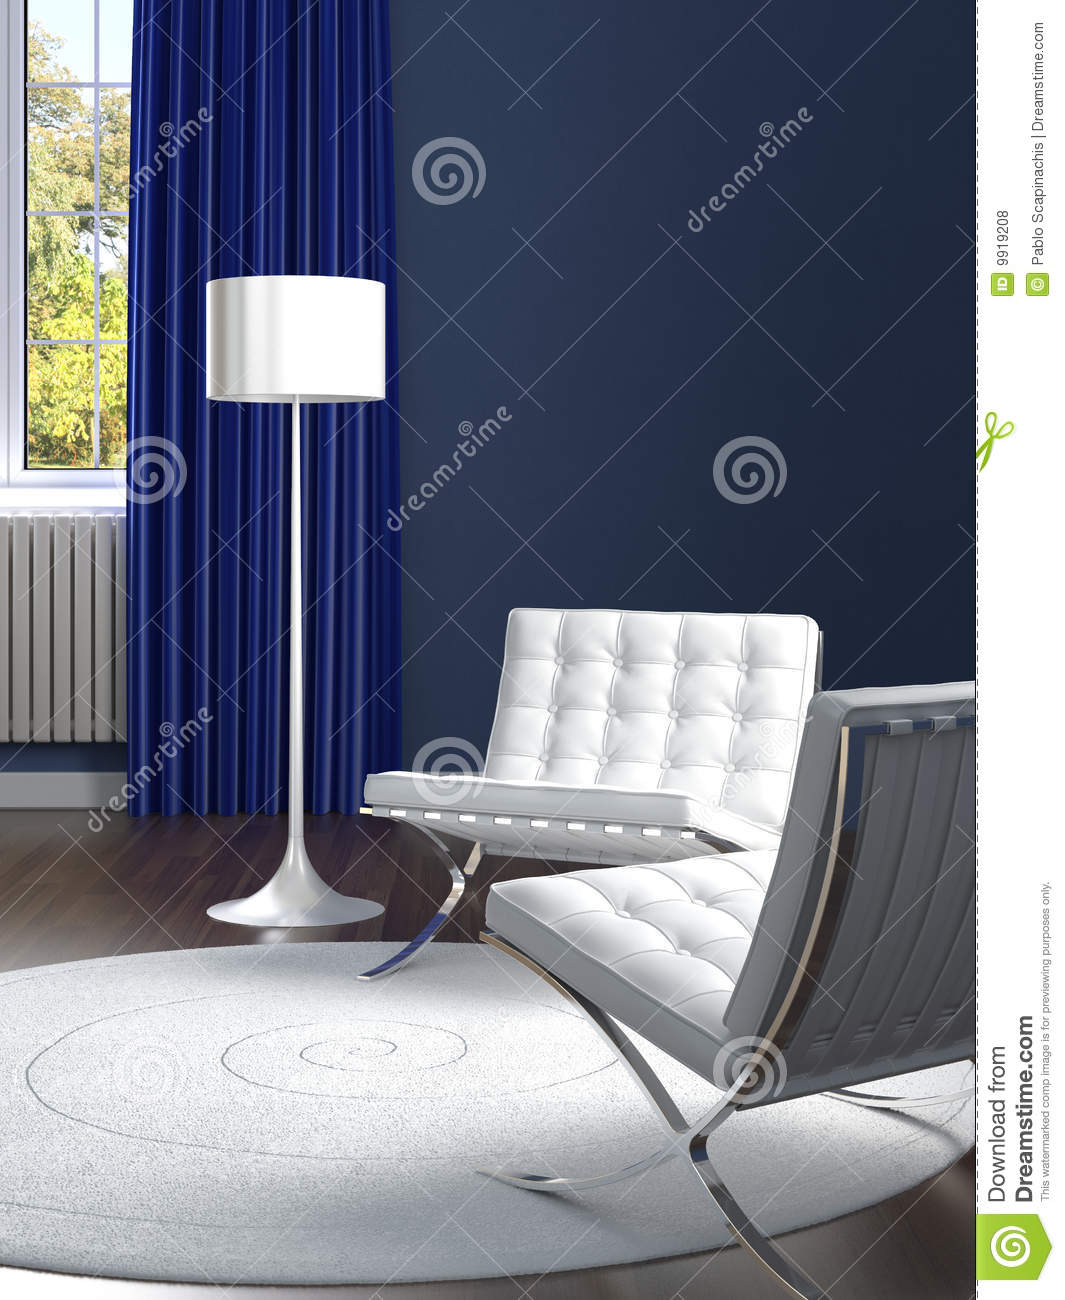 Blue And White Room interior design classic blue and white room royalty free stock